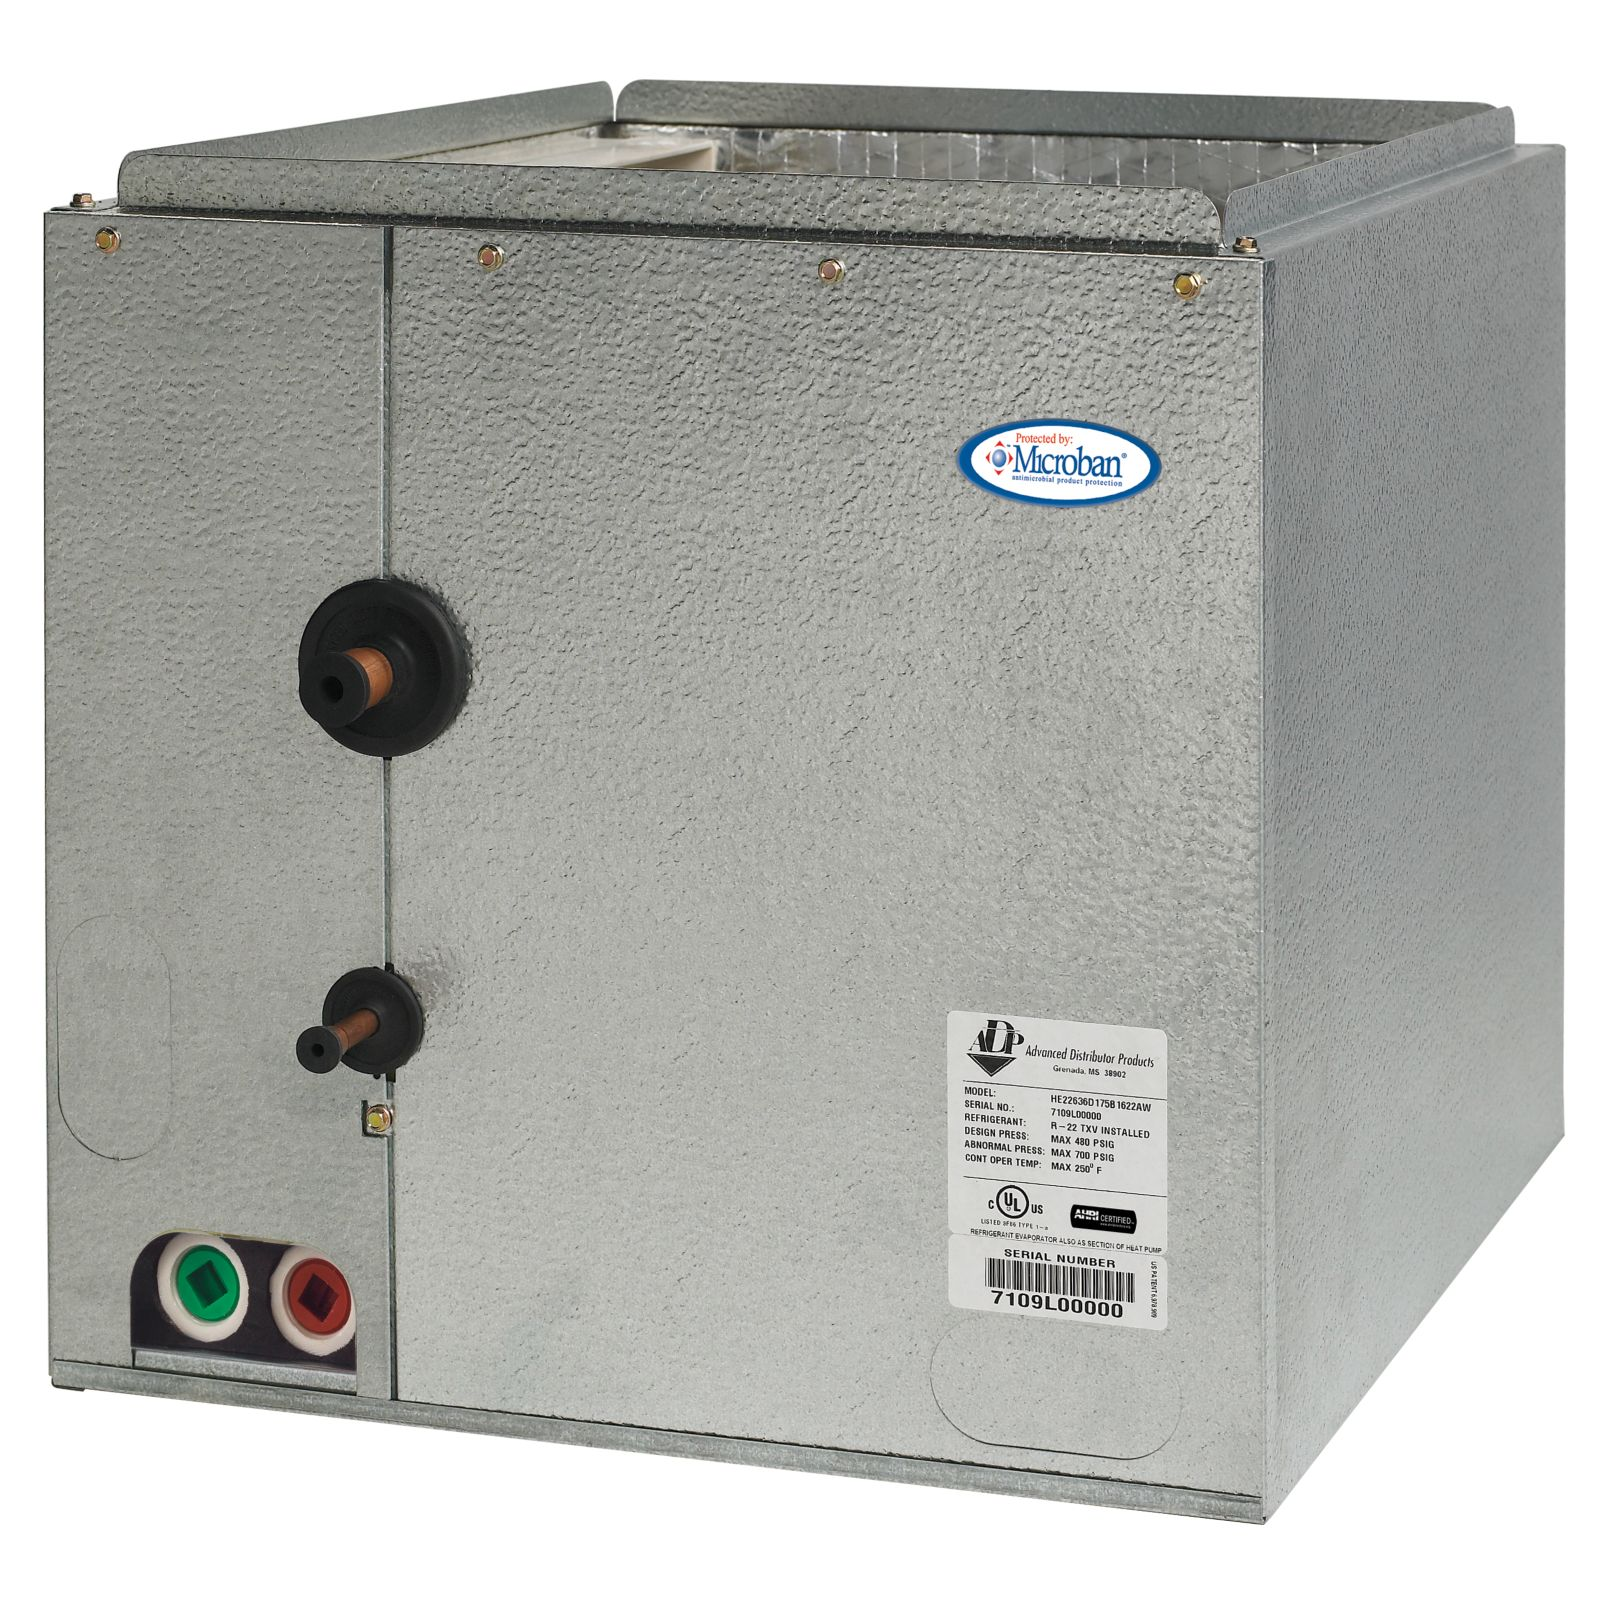 ADP HE49660C210B2722AP - 5 Ton, HE Series Cased Evaporator Coil, Multi-Position, Non-bleed A/C TXV (R-410A)